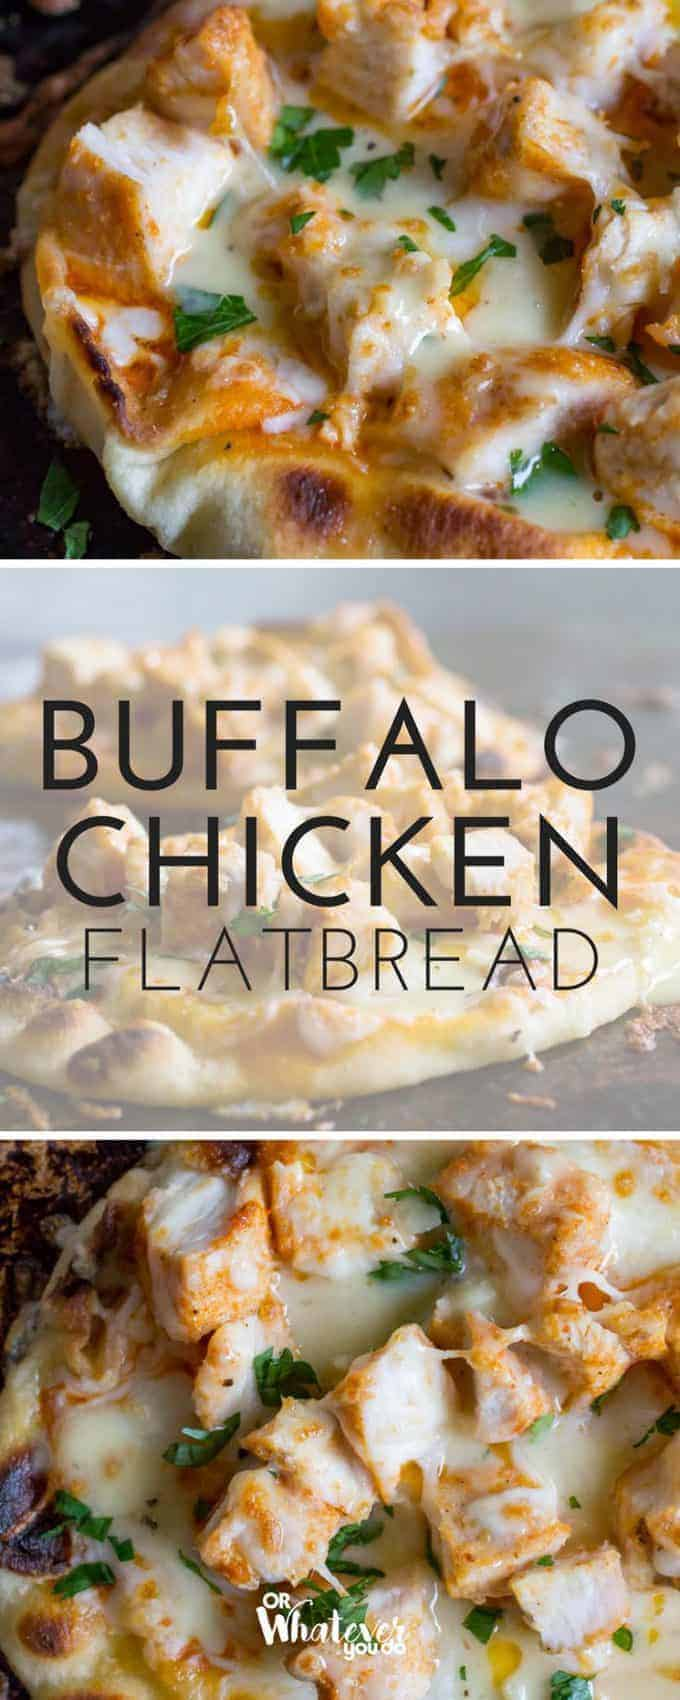 Amazing GRILLED Buffalo Chicken Flatbread is going to be your new go-to easy dinner! Fire up your grill and get to it! #traeger #woodpelletgrill #easybutton #kidsloveit #recipe #summercooking #springcooking #fallcooking